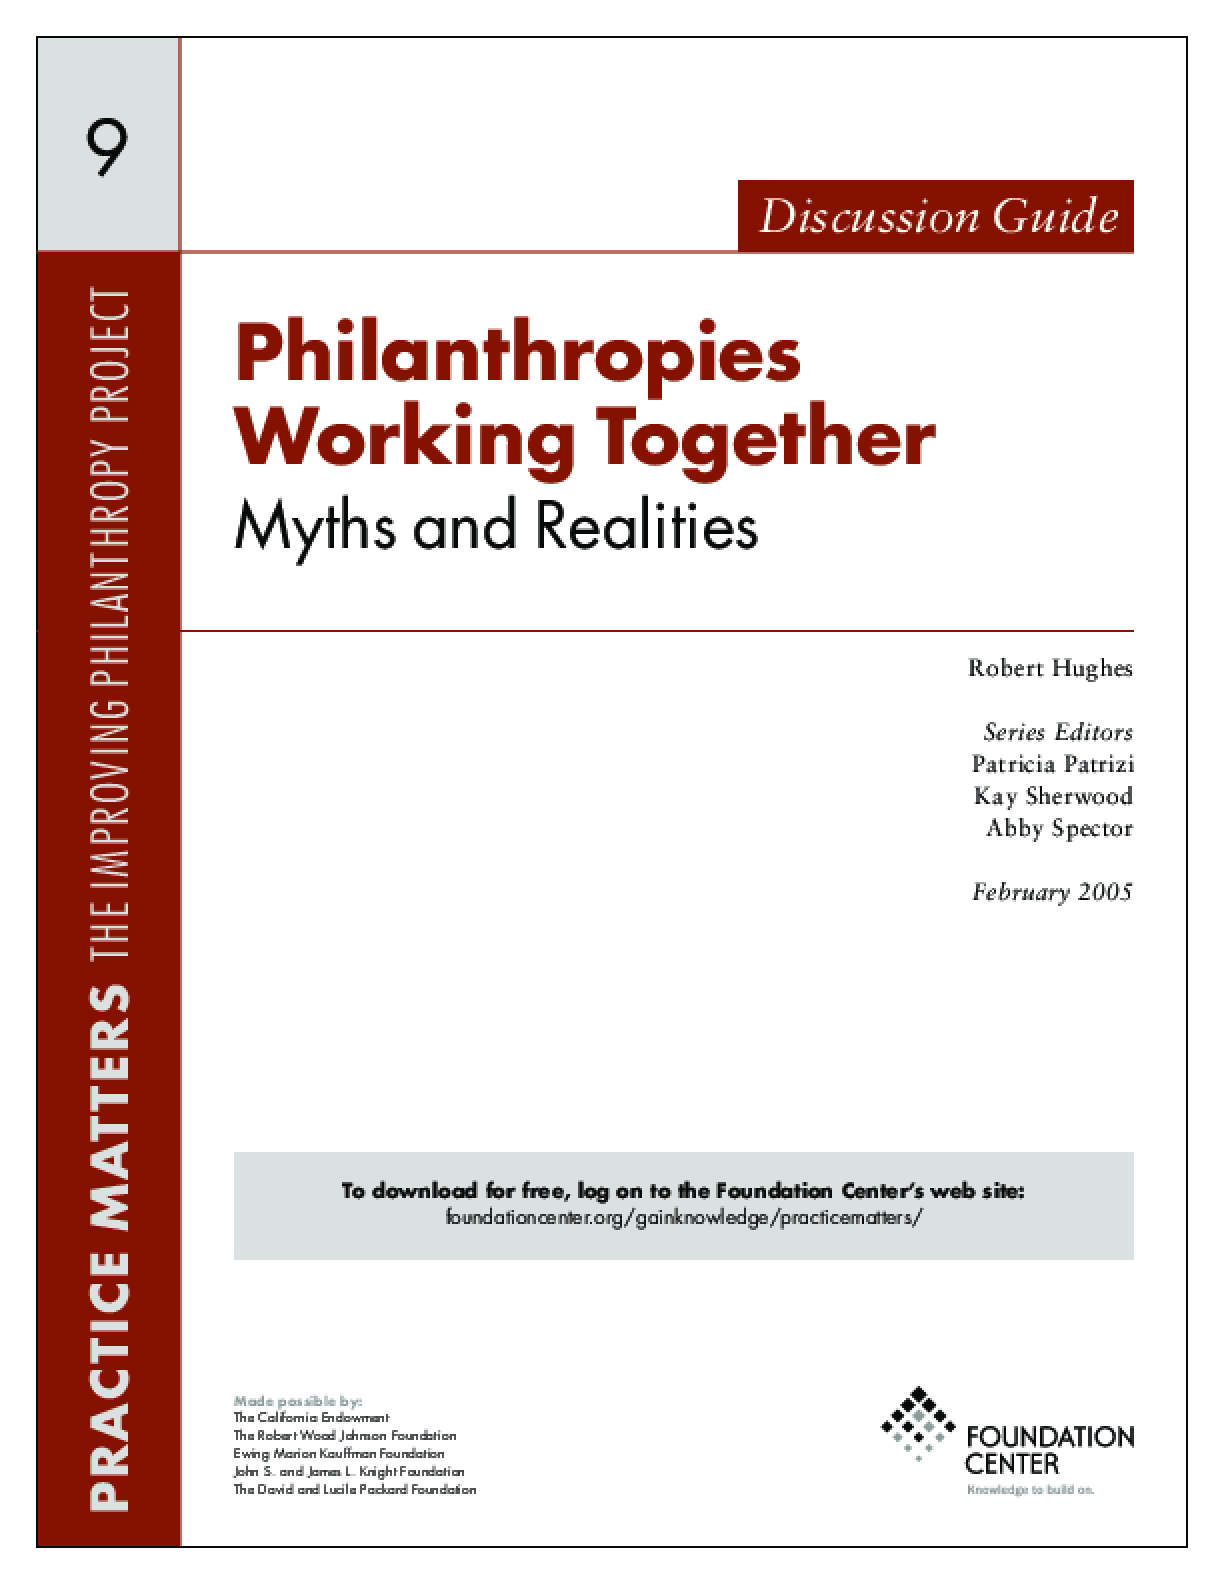 Philanthropies Working Together: Myths and Realities - Discussion Guide